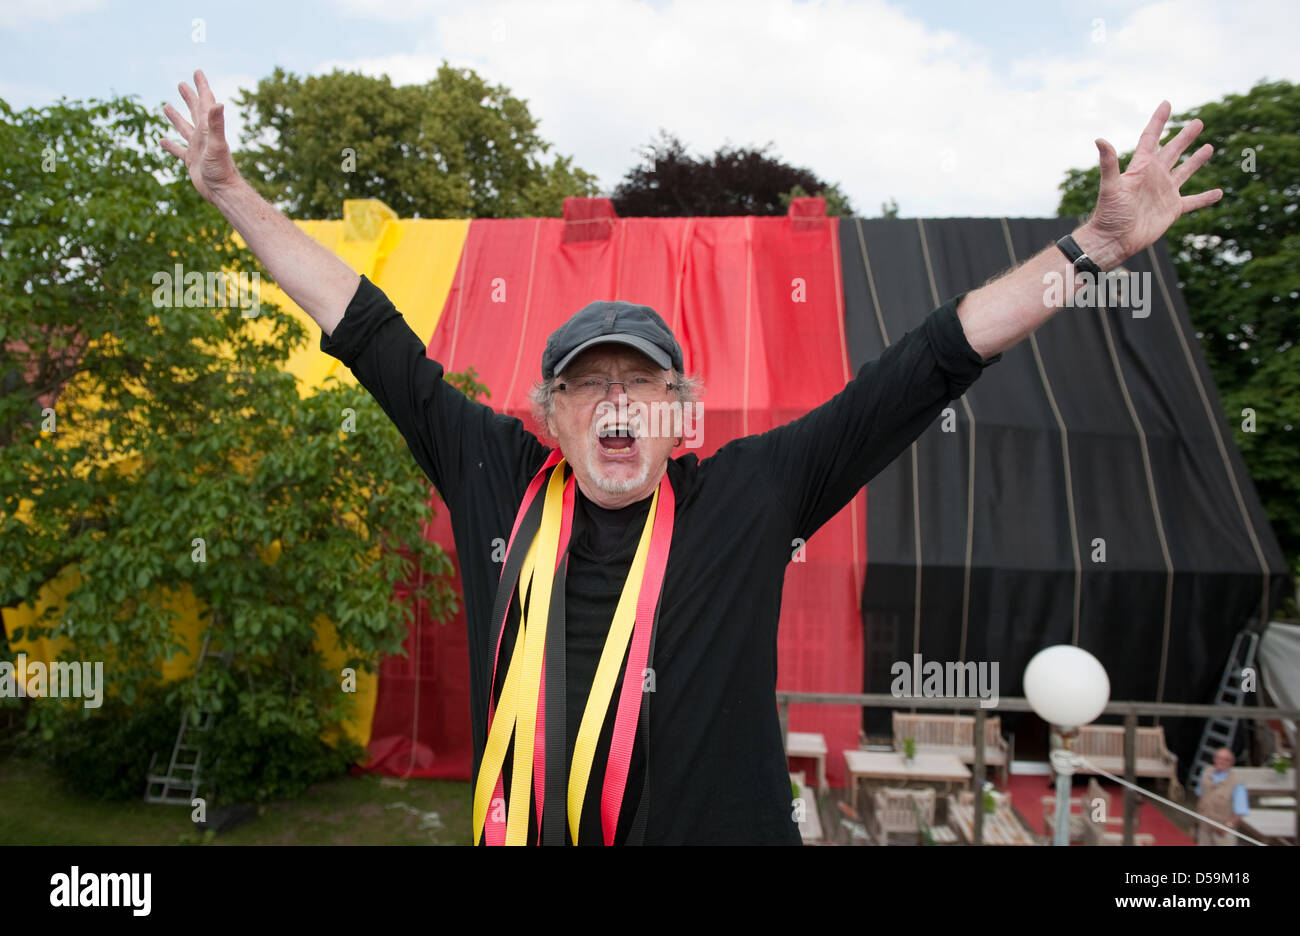 Sixty-nine-year-old salesman, art collector and soccer enthusiast Hans Schalueck poses in front of his wrapped house - Stock Image